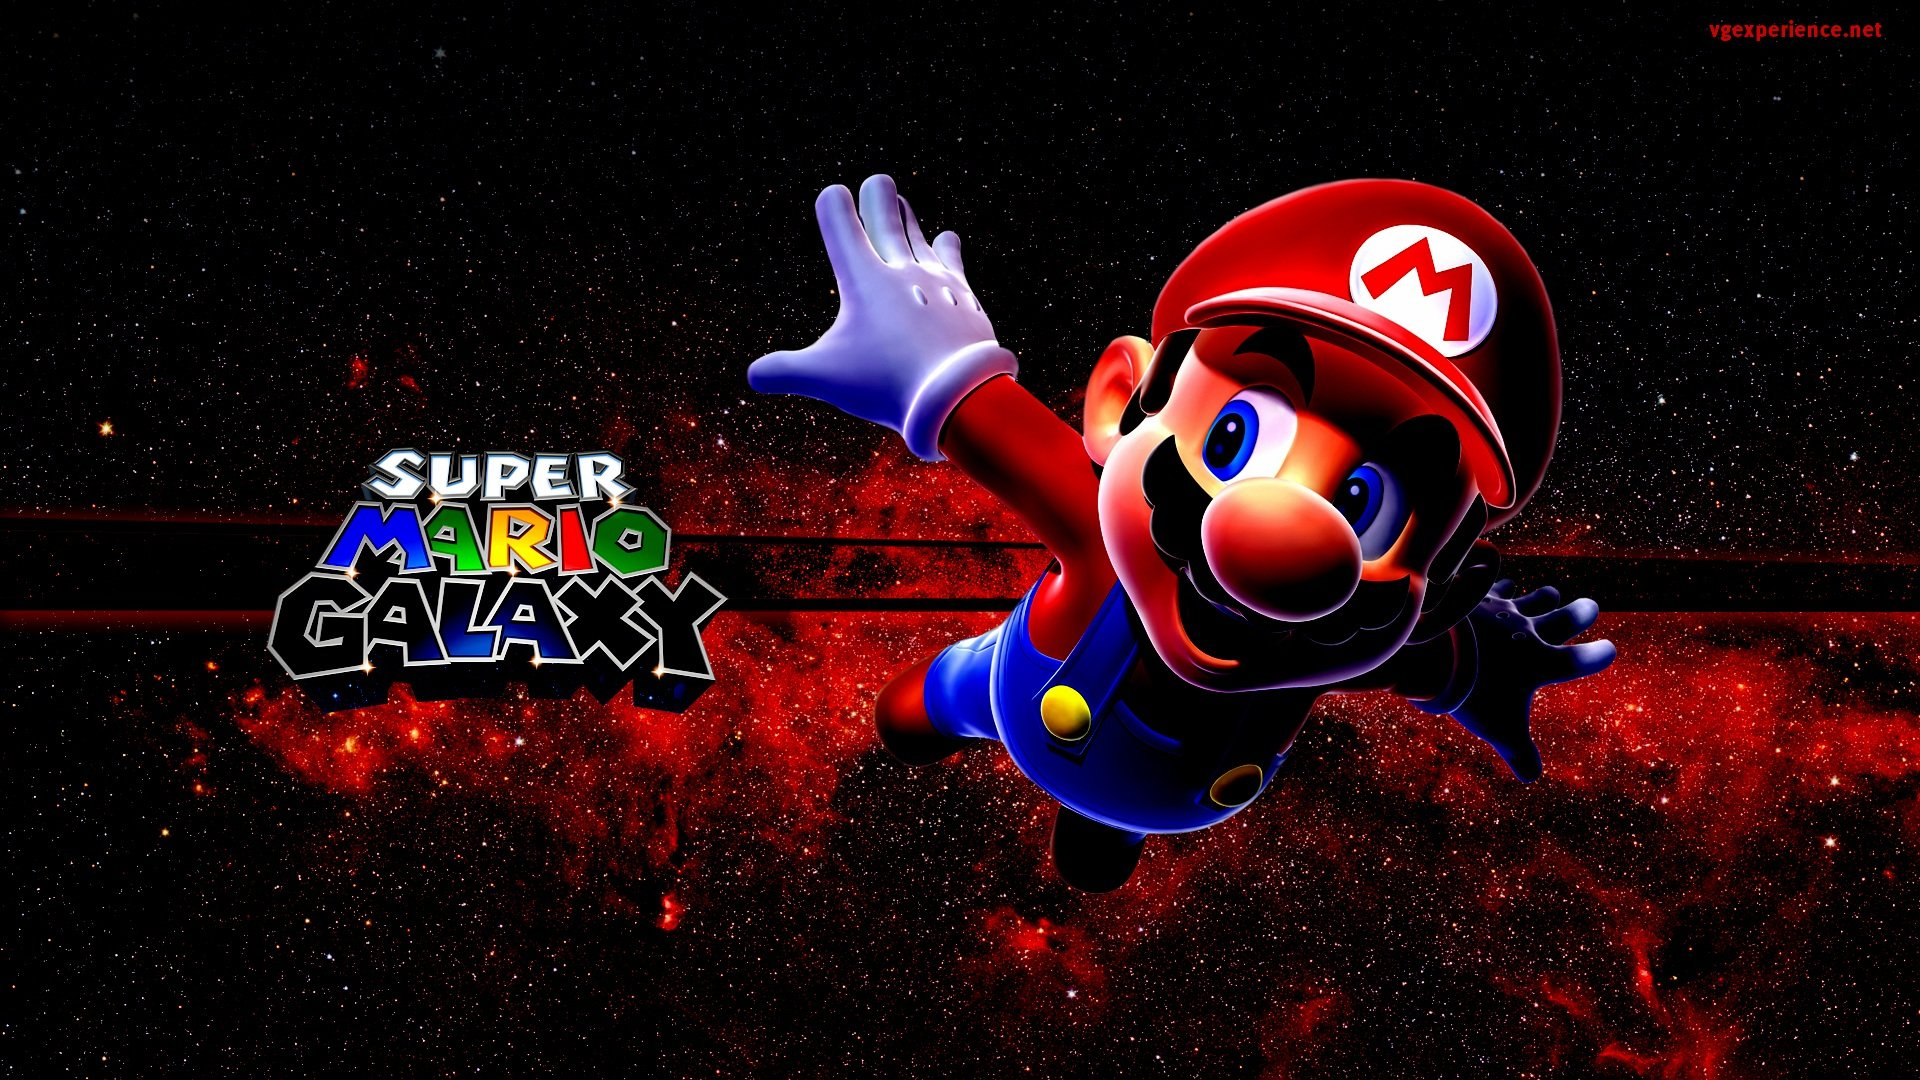 Super Mario Galaxy Wallpapers Hd For Desktop Backgrounds